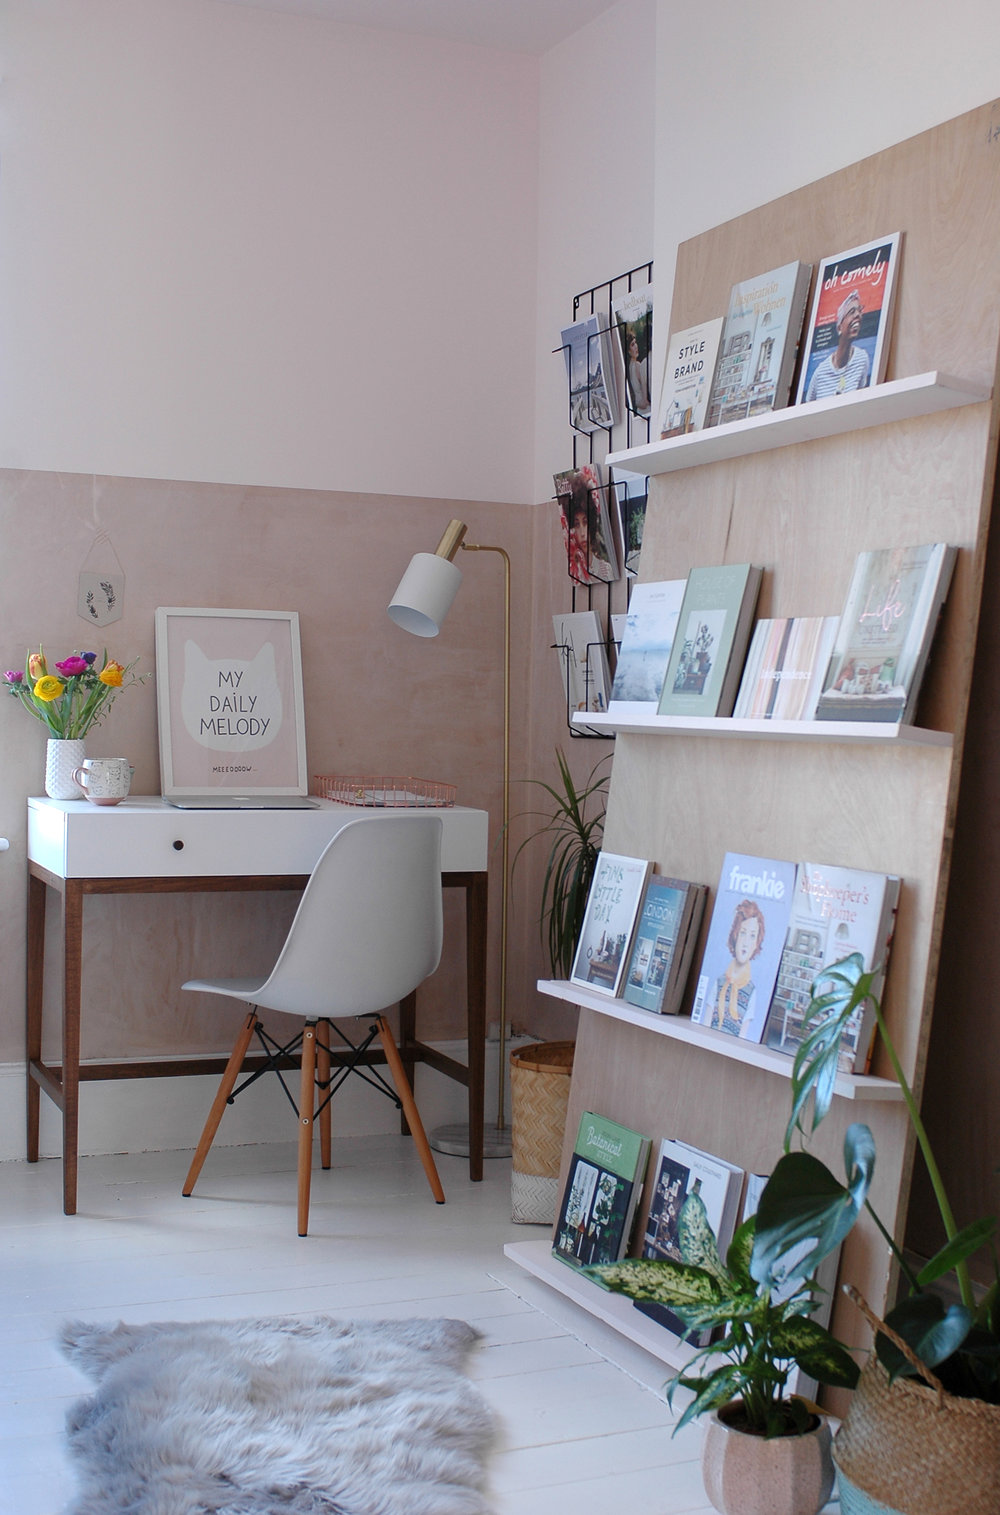 Photography by Caroline Rowland : Caroline's Office